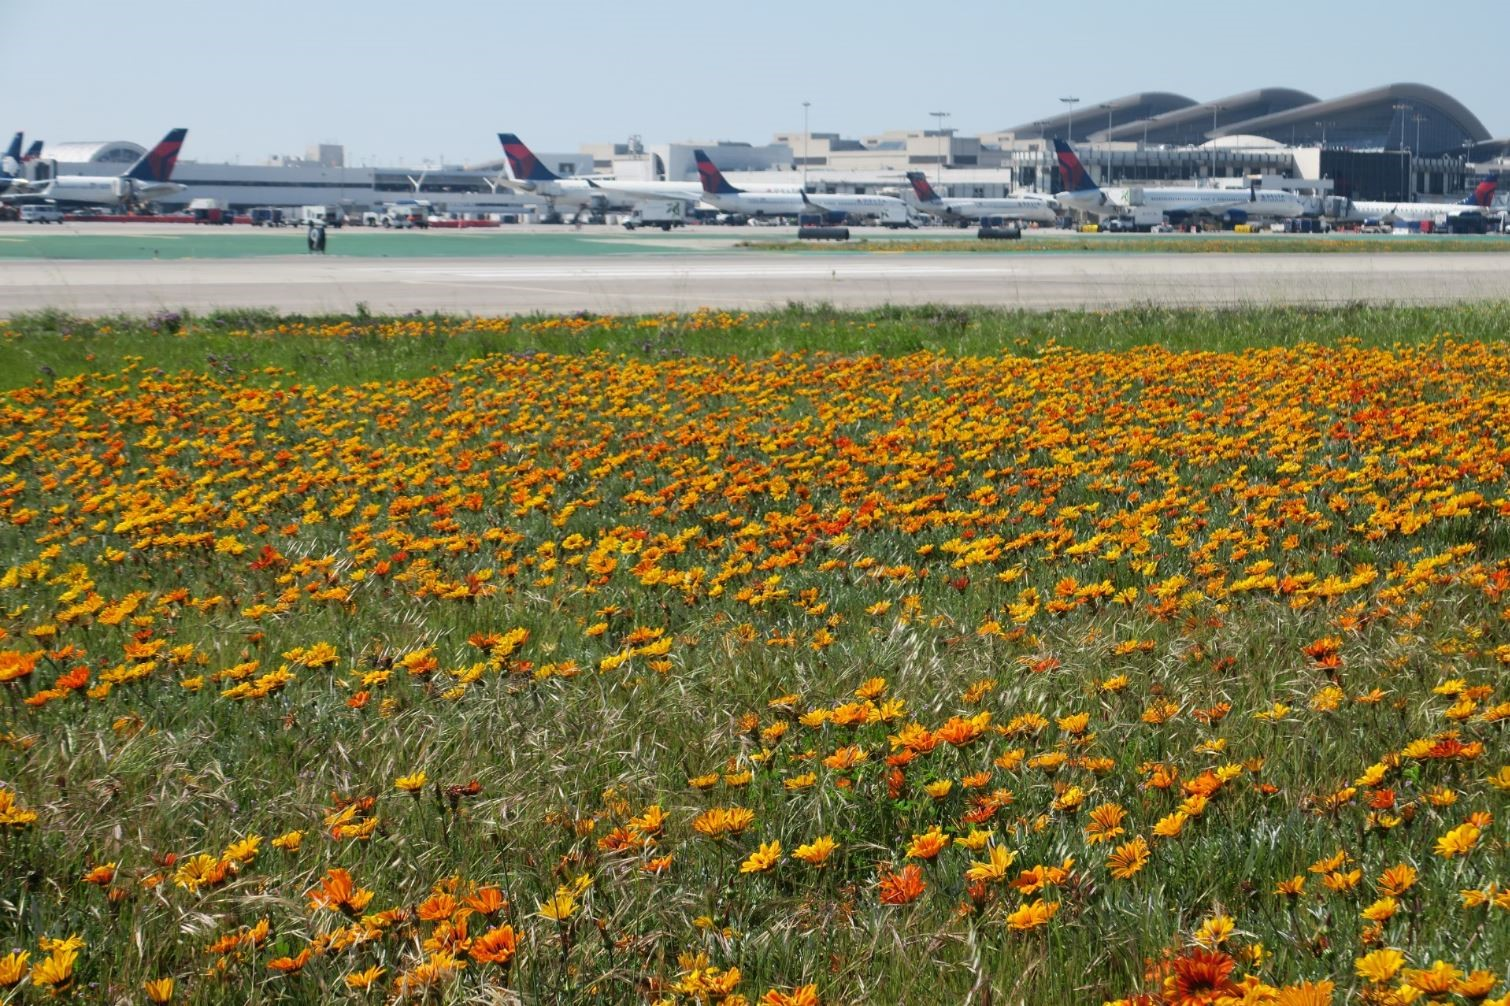 Airfield with spring flowers